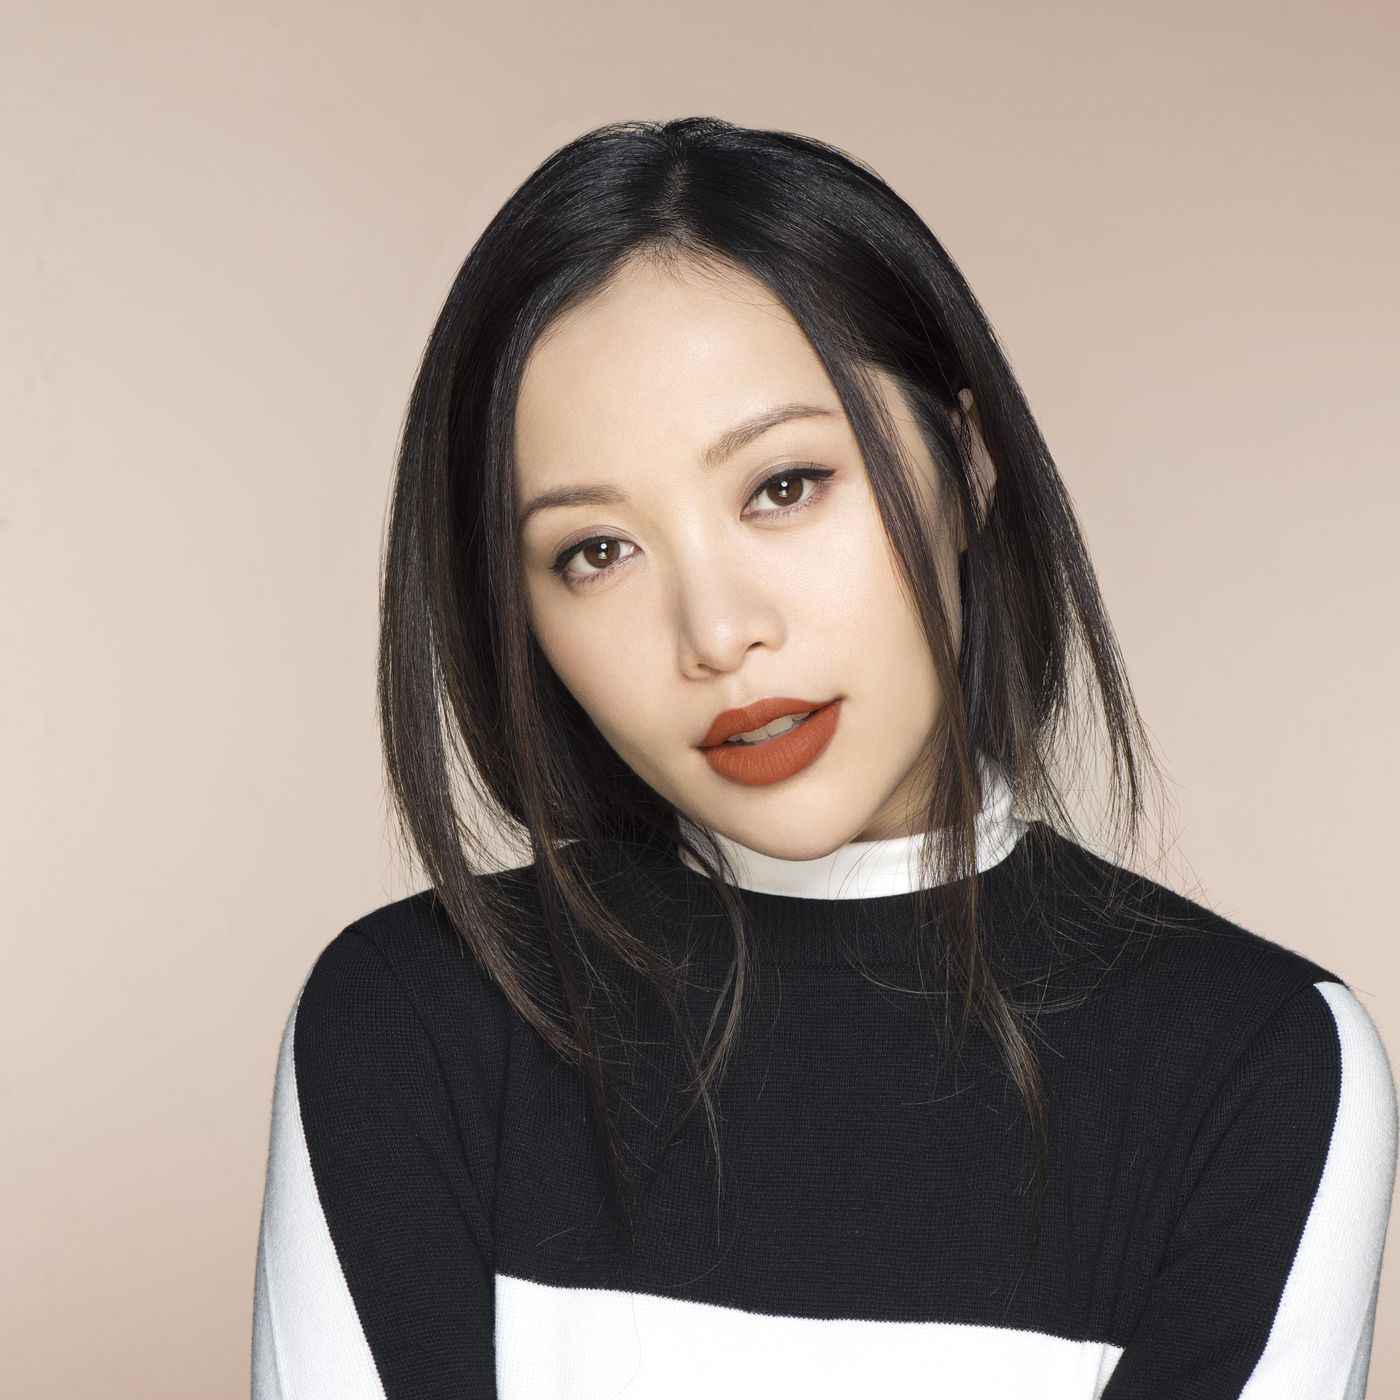 The Rebirth of YouTube Beauty Pioneer Michelle Phan - Racked